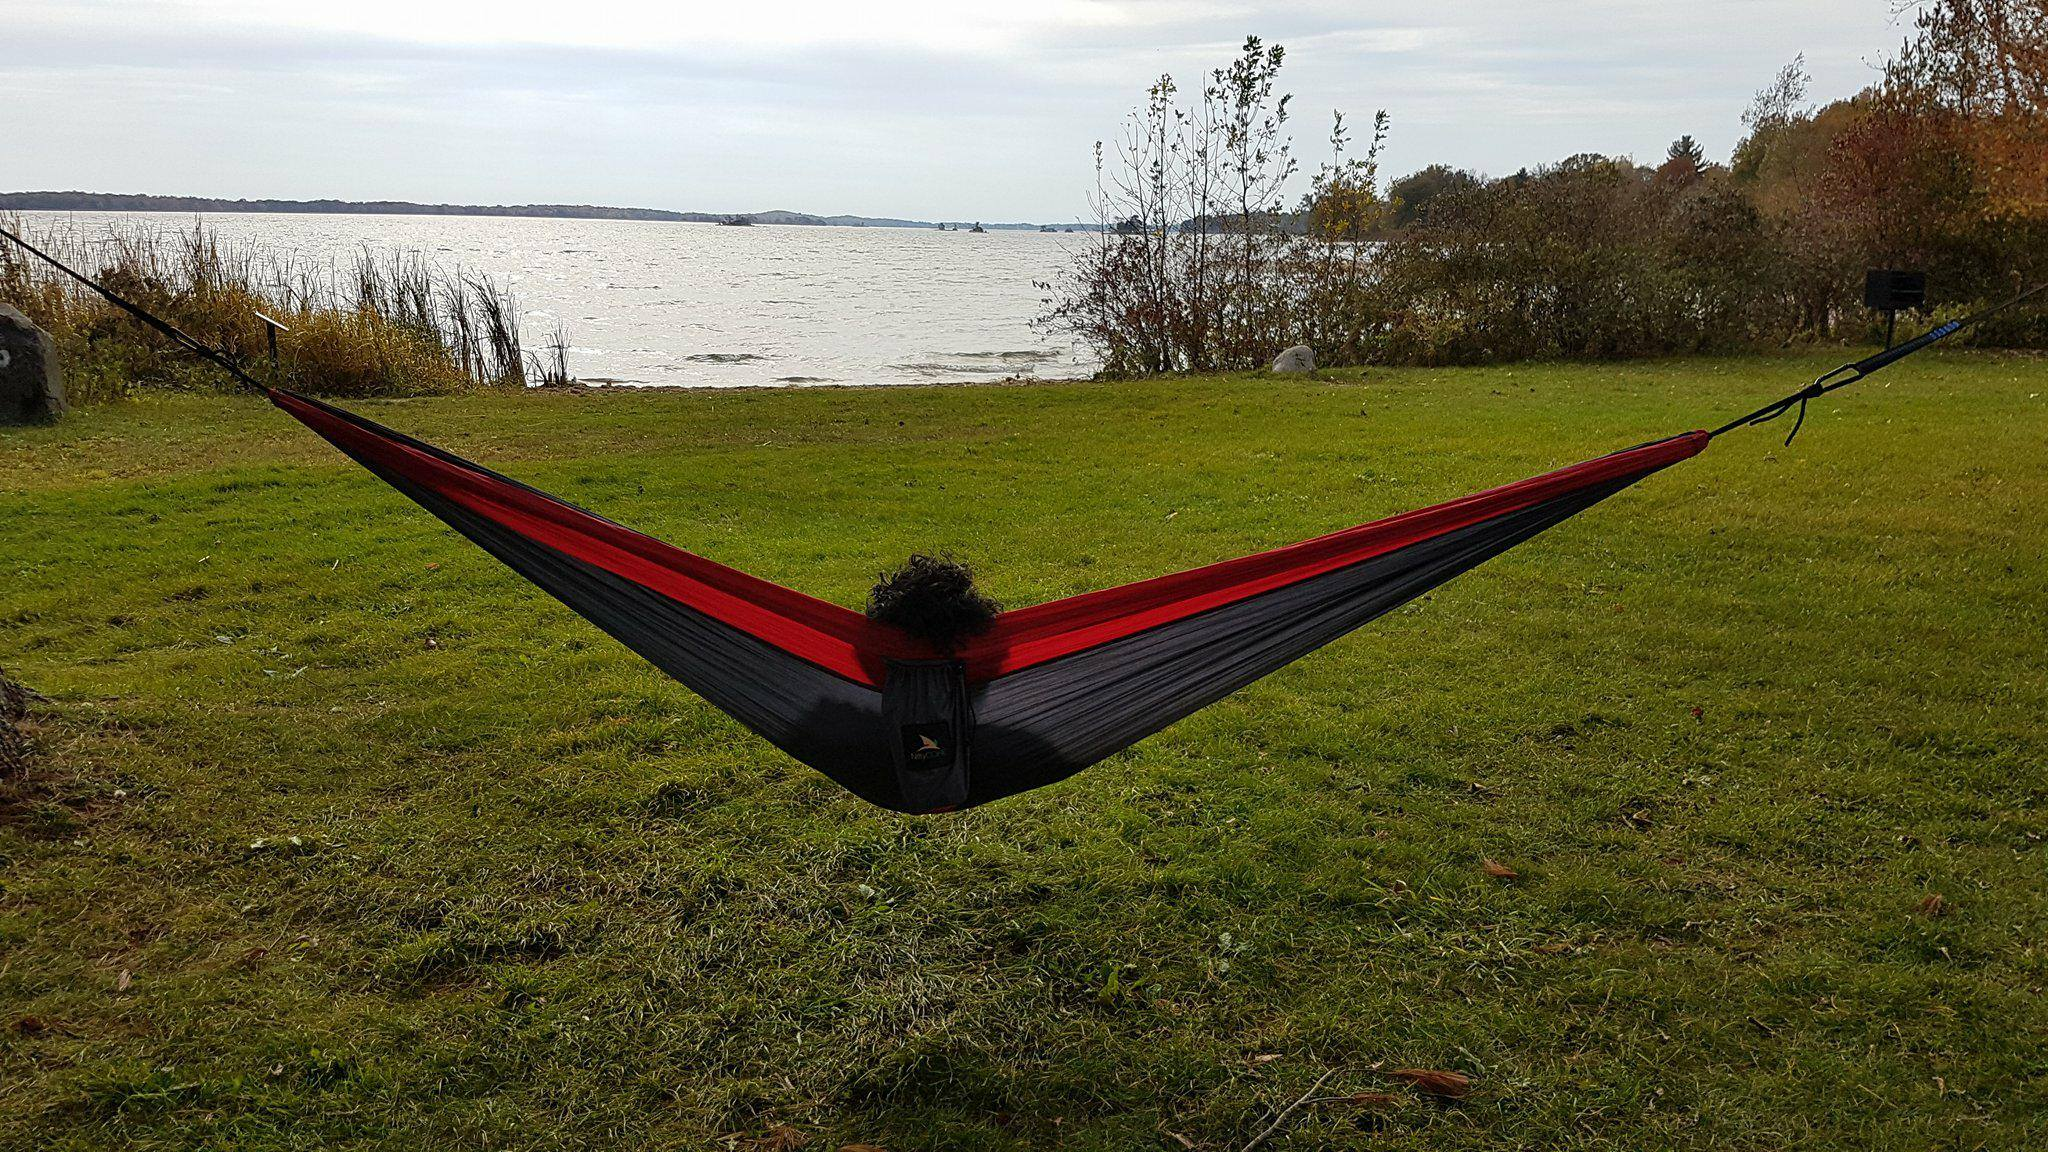 ip stand hammocks sale steel used case com walmart carrying indoor double and set hammock w bcp for outdoor